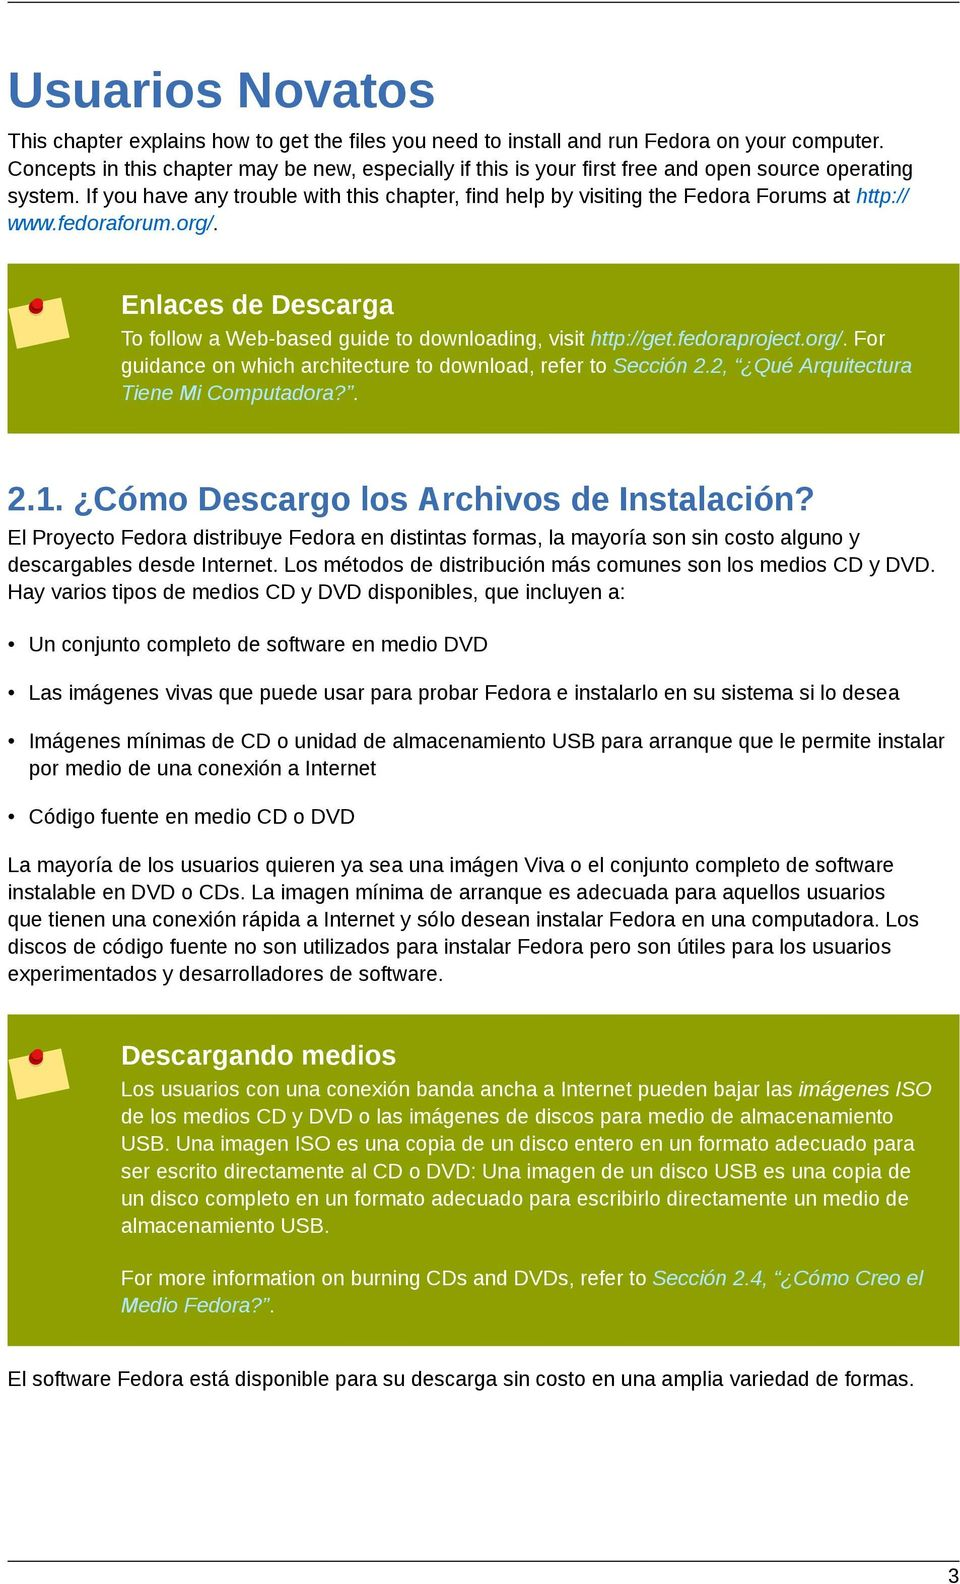 If you have any trouble with this chapter, find help by visiting the Fedora Forums at http:// www.fedoraforum.org/. Enlaces de Descarga To follow a Web-based guide to downloading, visit http://get.